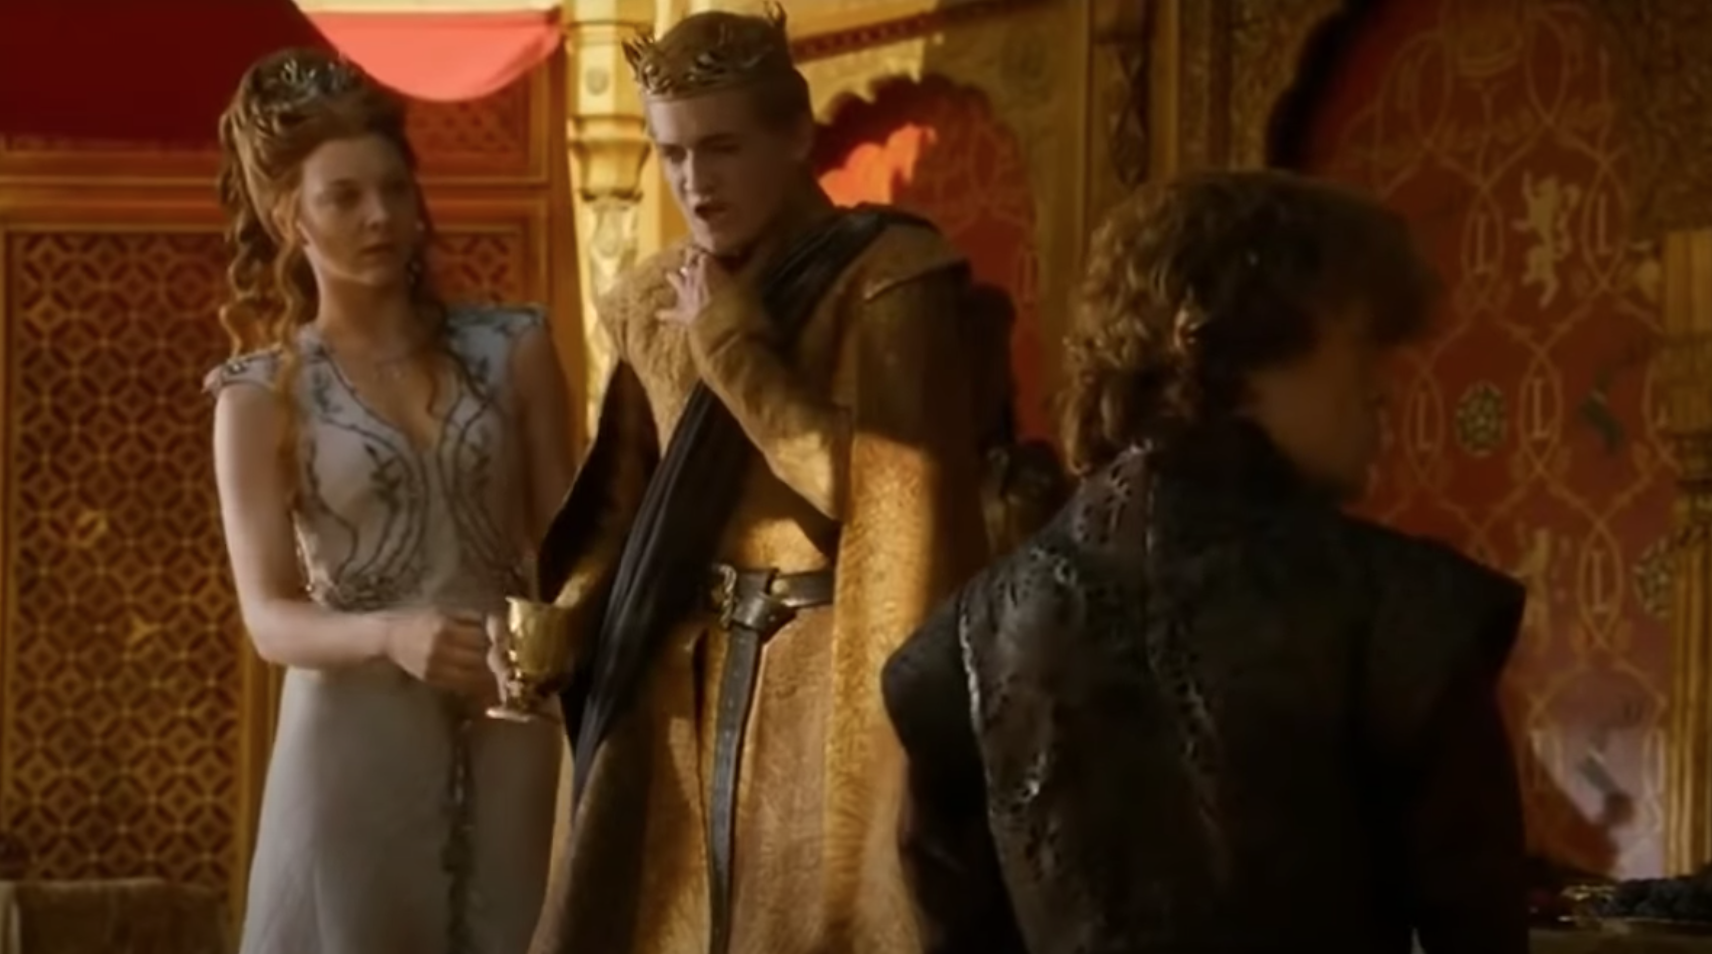 Still from Game of Thrones: Joffrey clasps his hand to his throat with a shocked look on his face